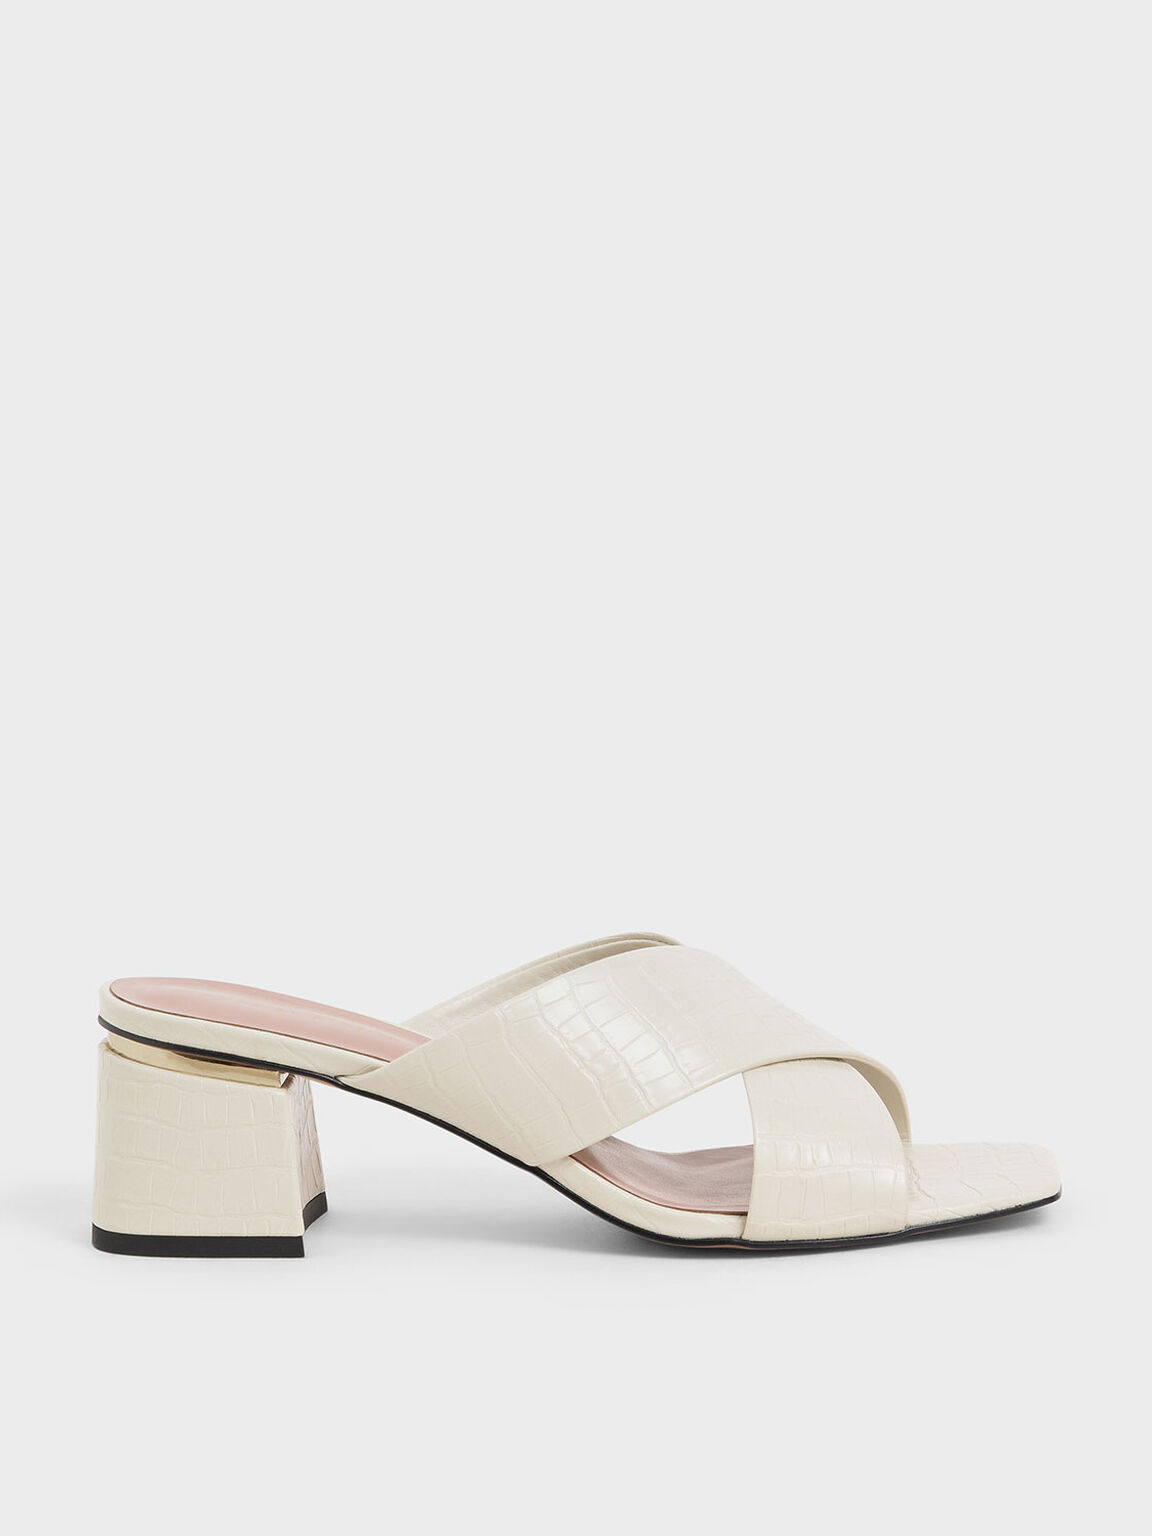 Croc-Effect Criss Cross Mules, Chalk, hi-res